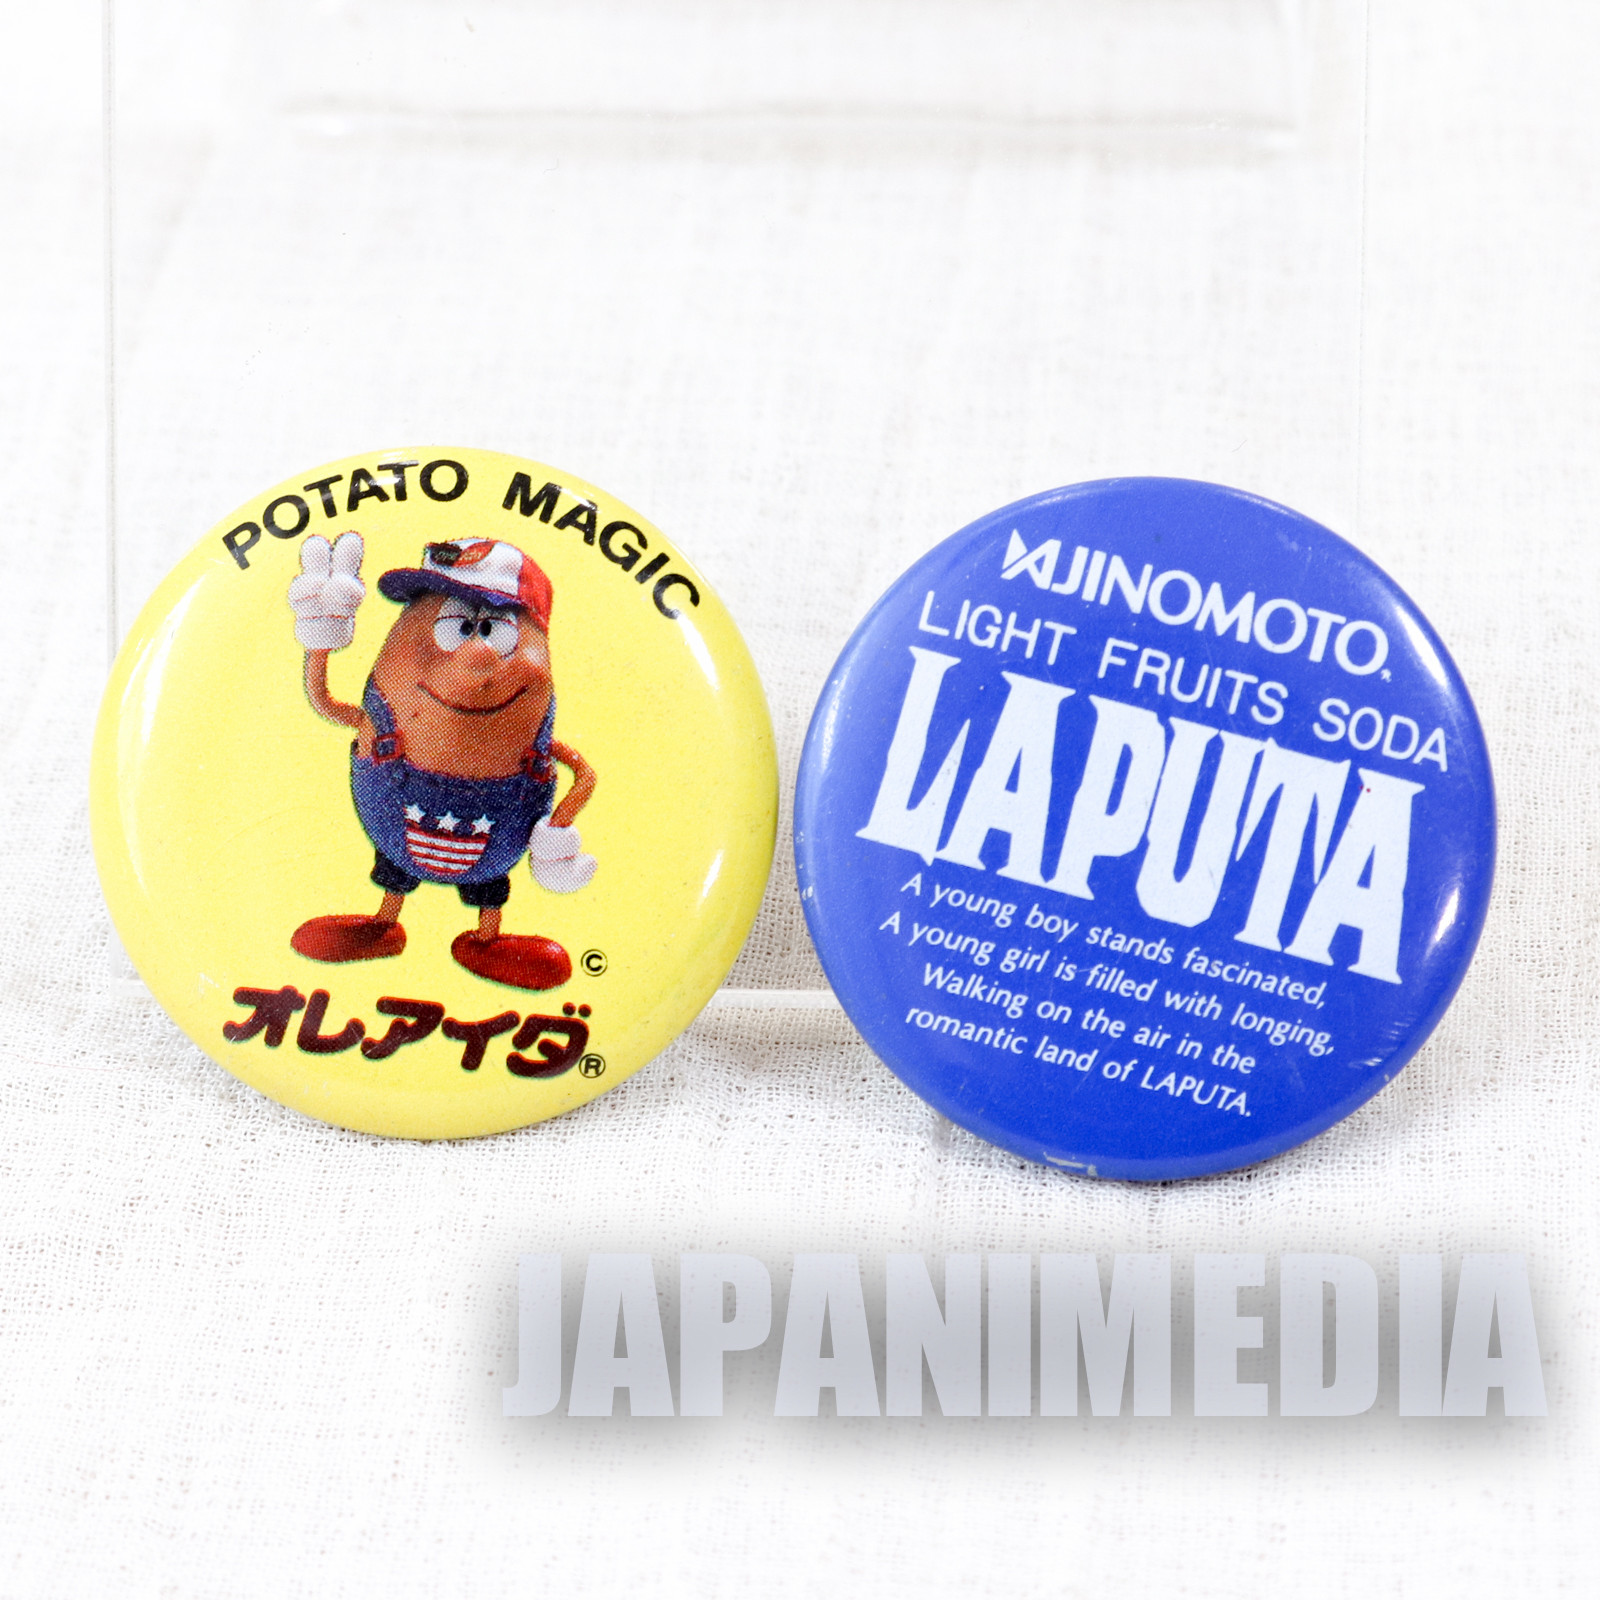 Retro Japanese Button Can Badge Pins (Laputa + Potato Magic) JAPAN ANIME